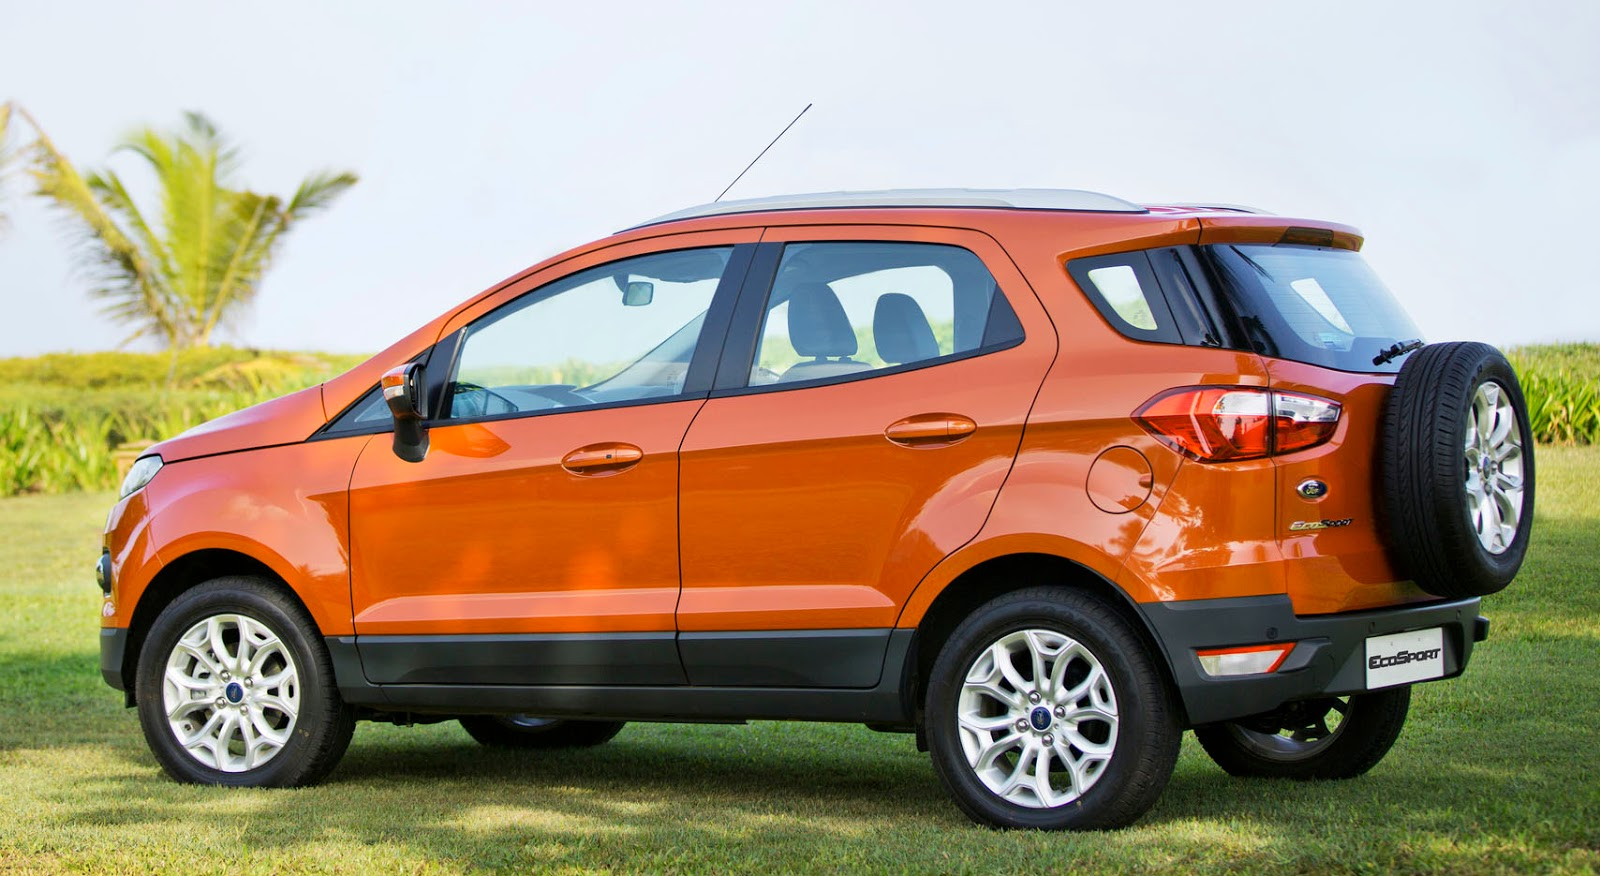 Líder no segmento de leves: Ford Ecosport é destaque no mercado!